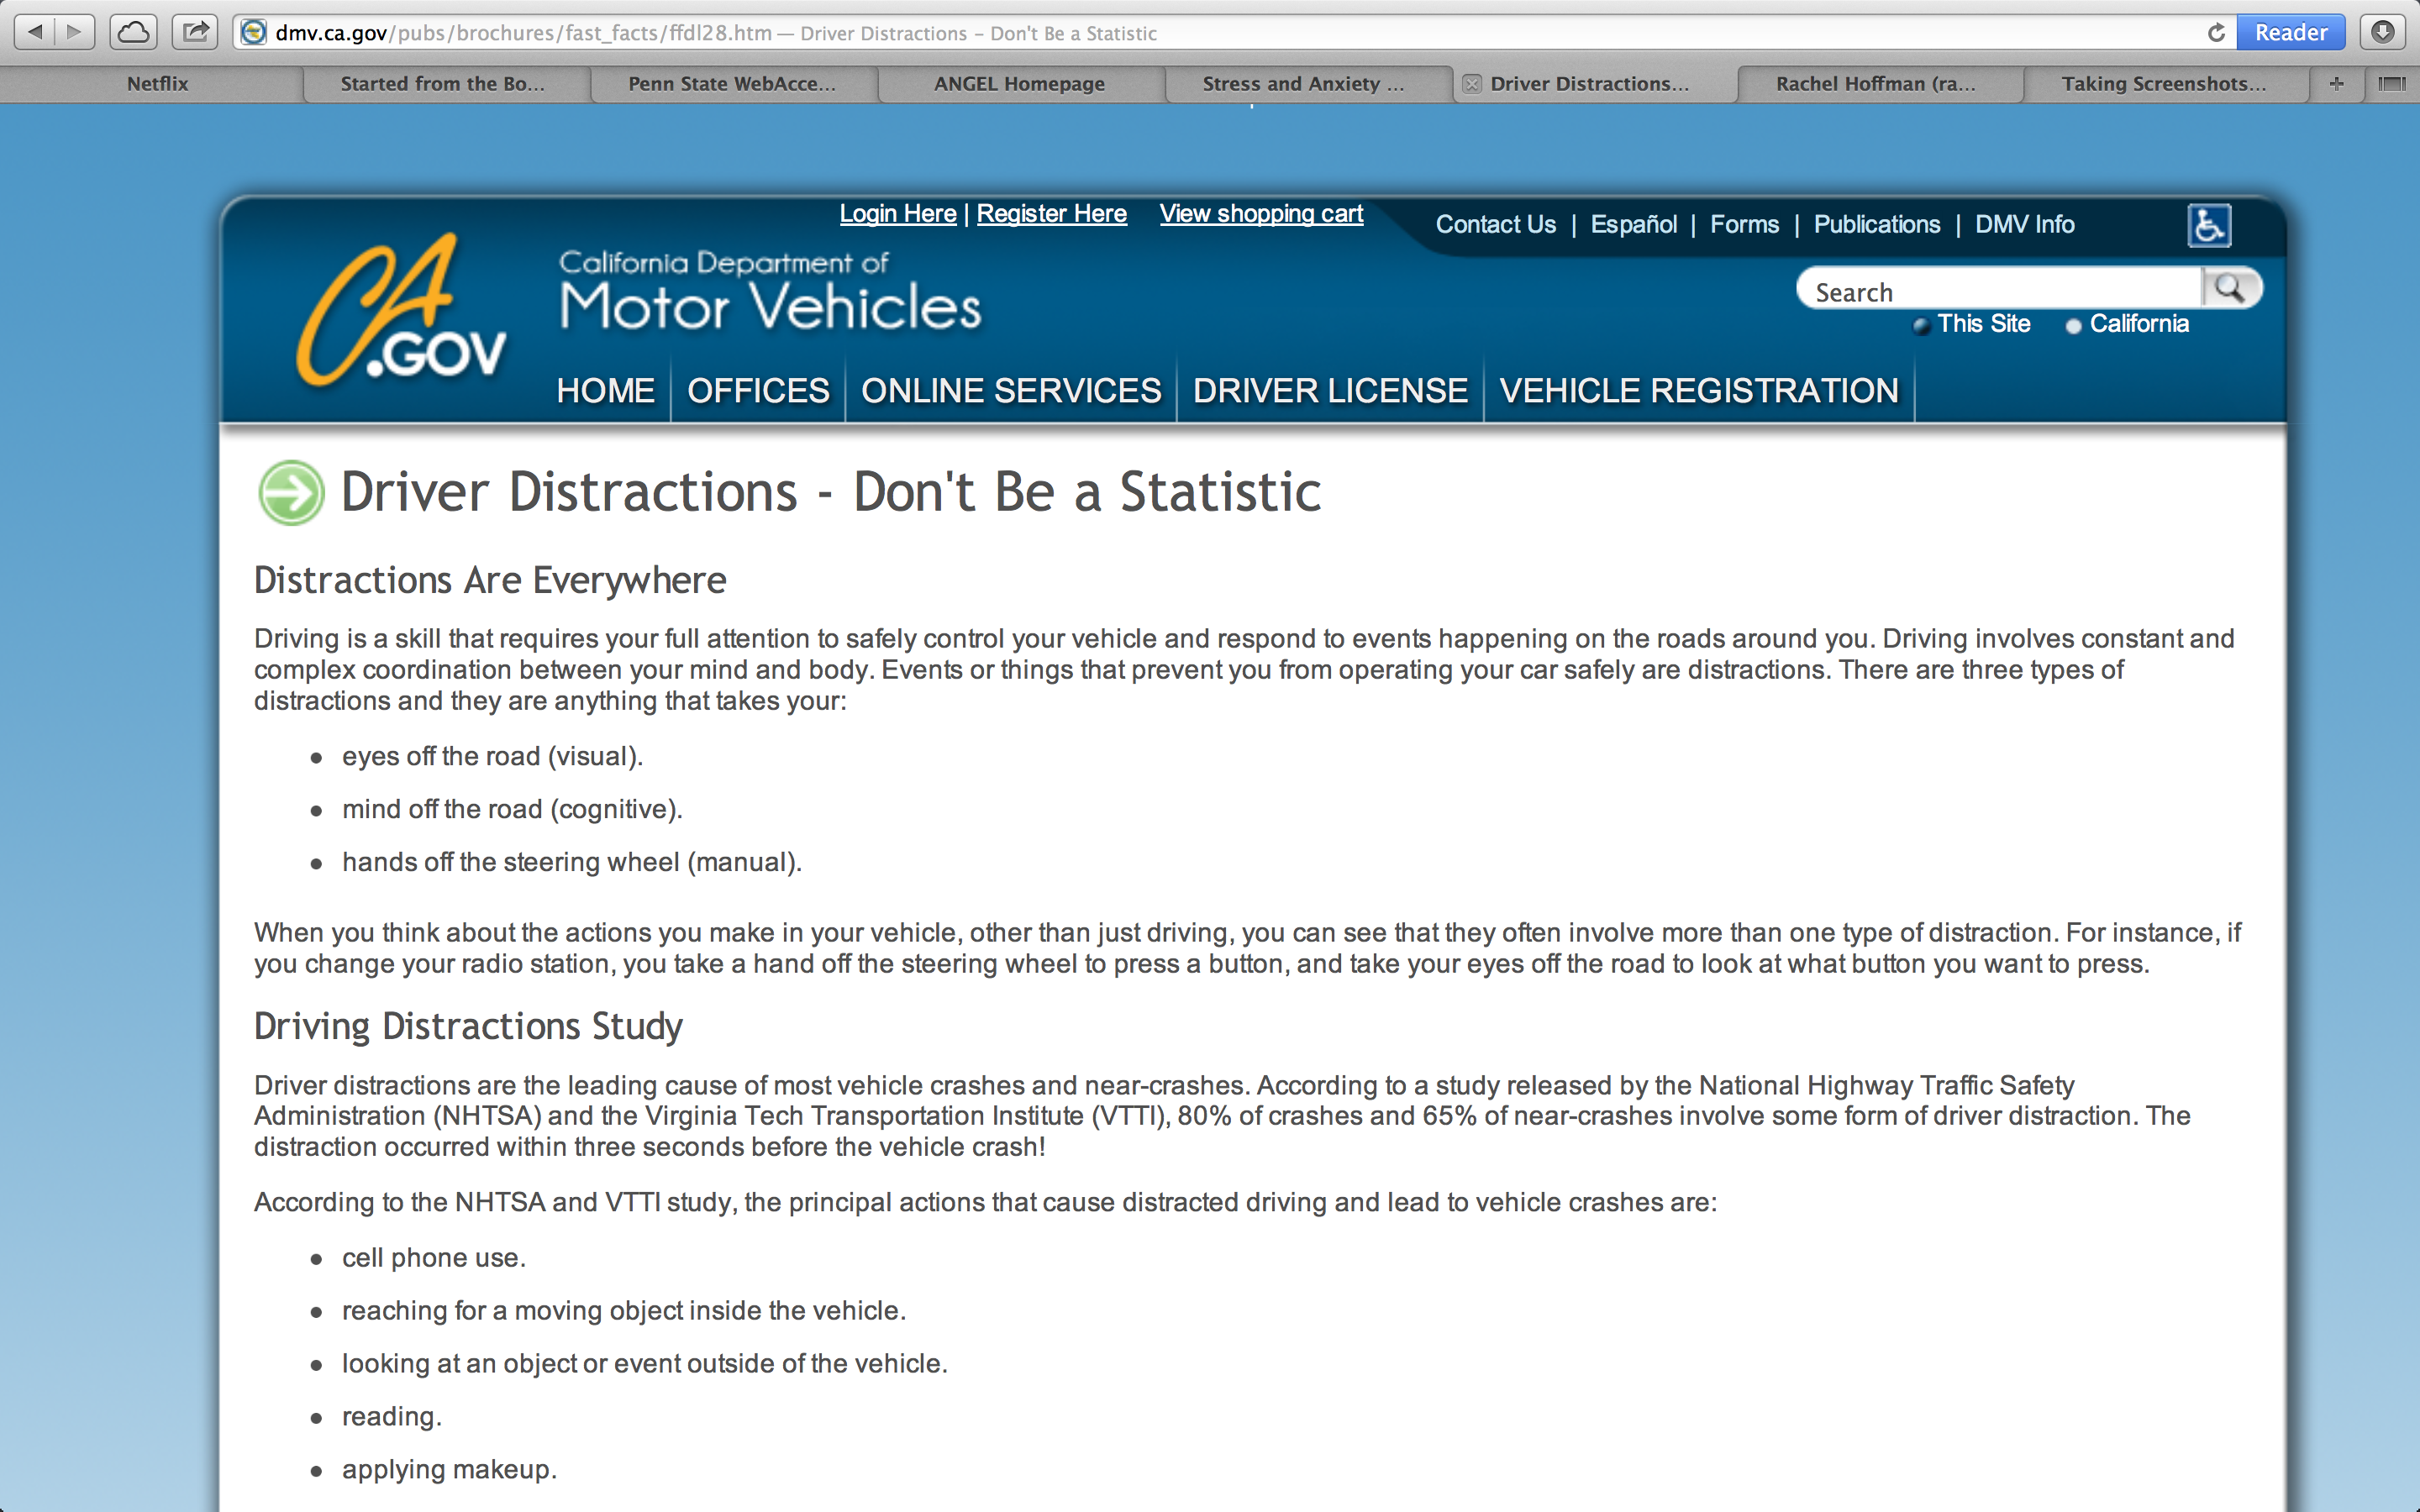 This DmvCaGov Brochure On Driver Distractions Shows The